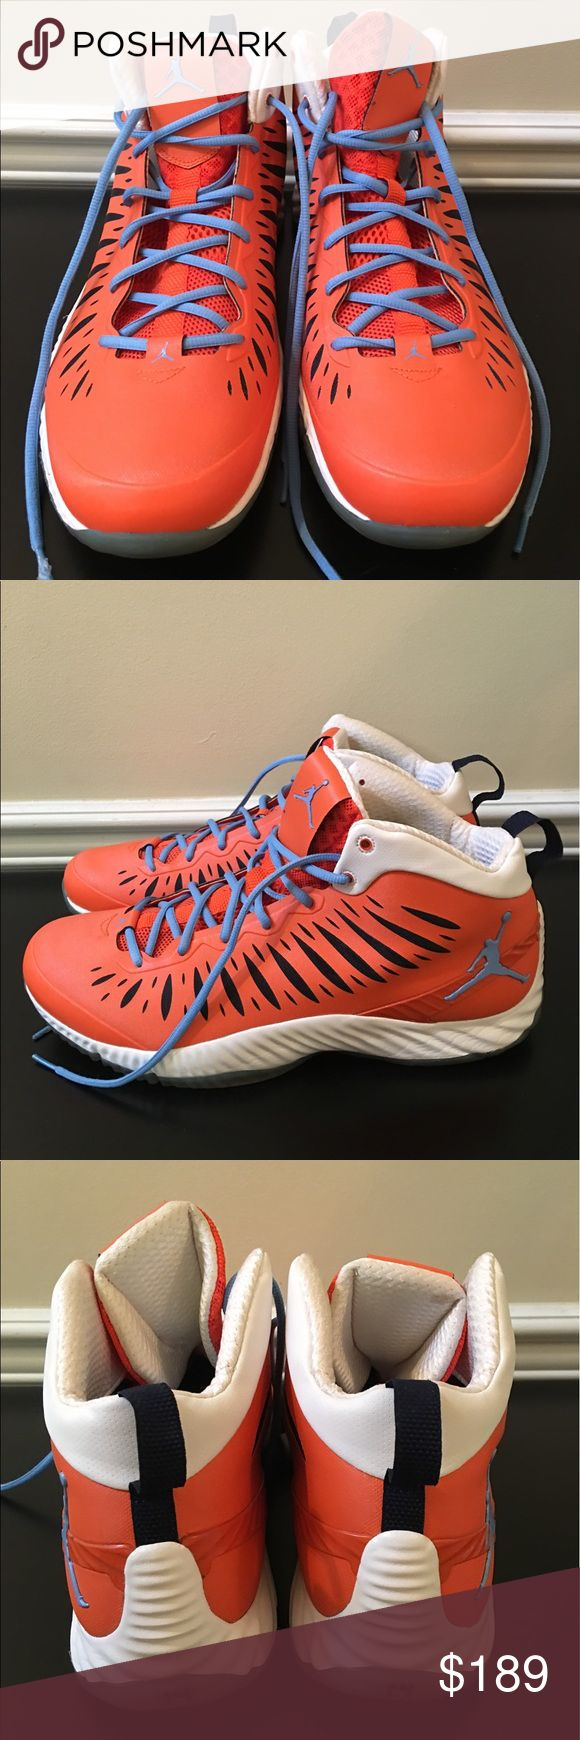 🛍 Nike #14 Bobcats Promo MKG Air Jordan Sneakers Good condition.  Sample shoes.  Promo for Charlotte Bobcats.  #14 Michael Kidd Gilchrist. Lunarlon. Air Jordan Shoes Sneakers